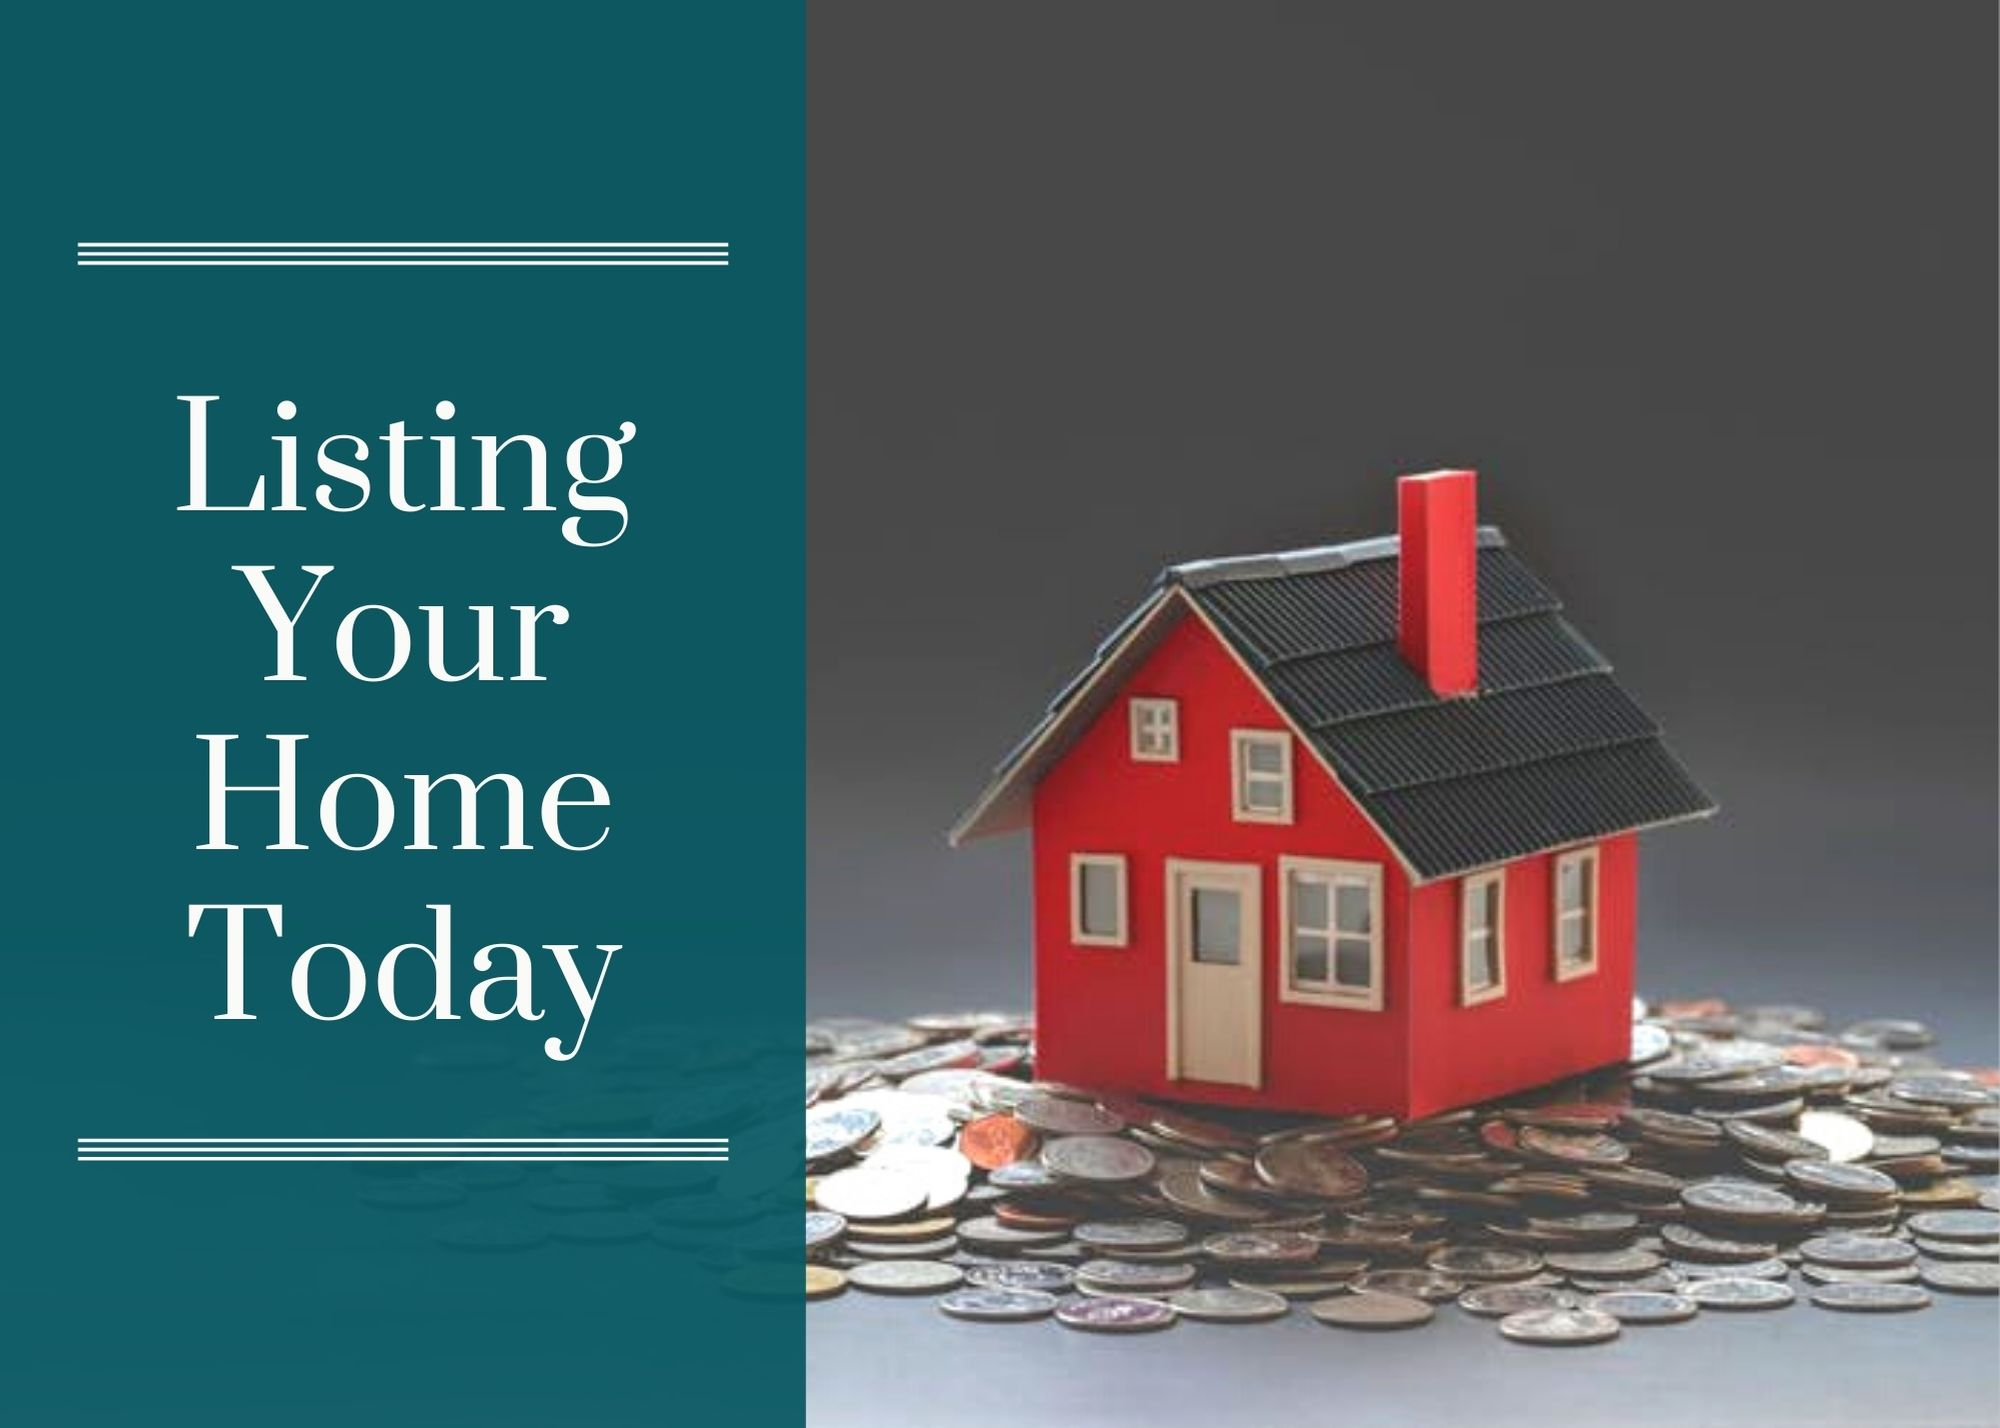 Listing Your Home Today